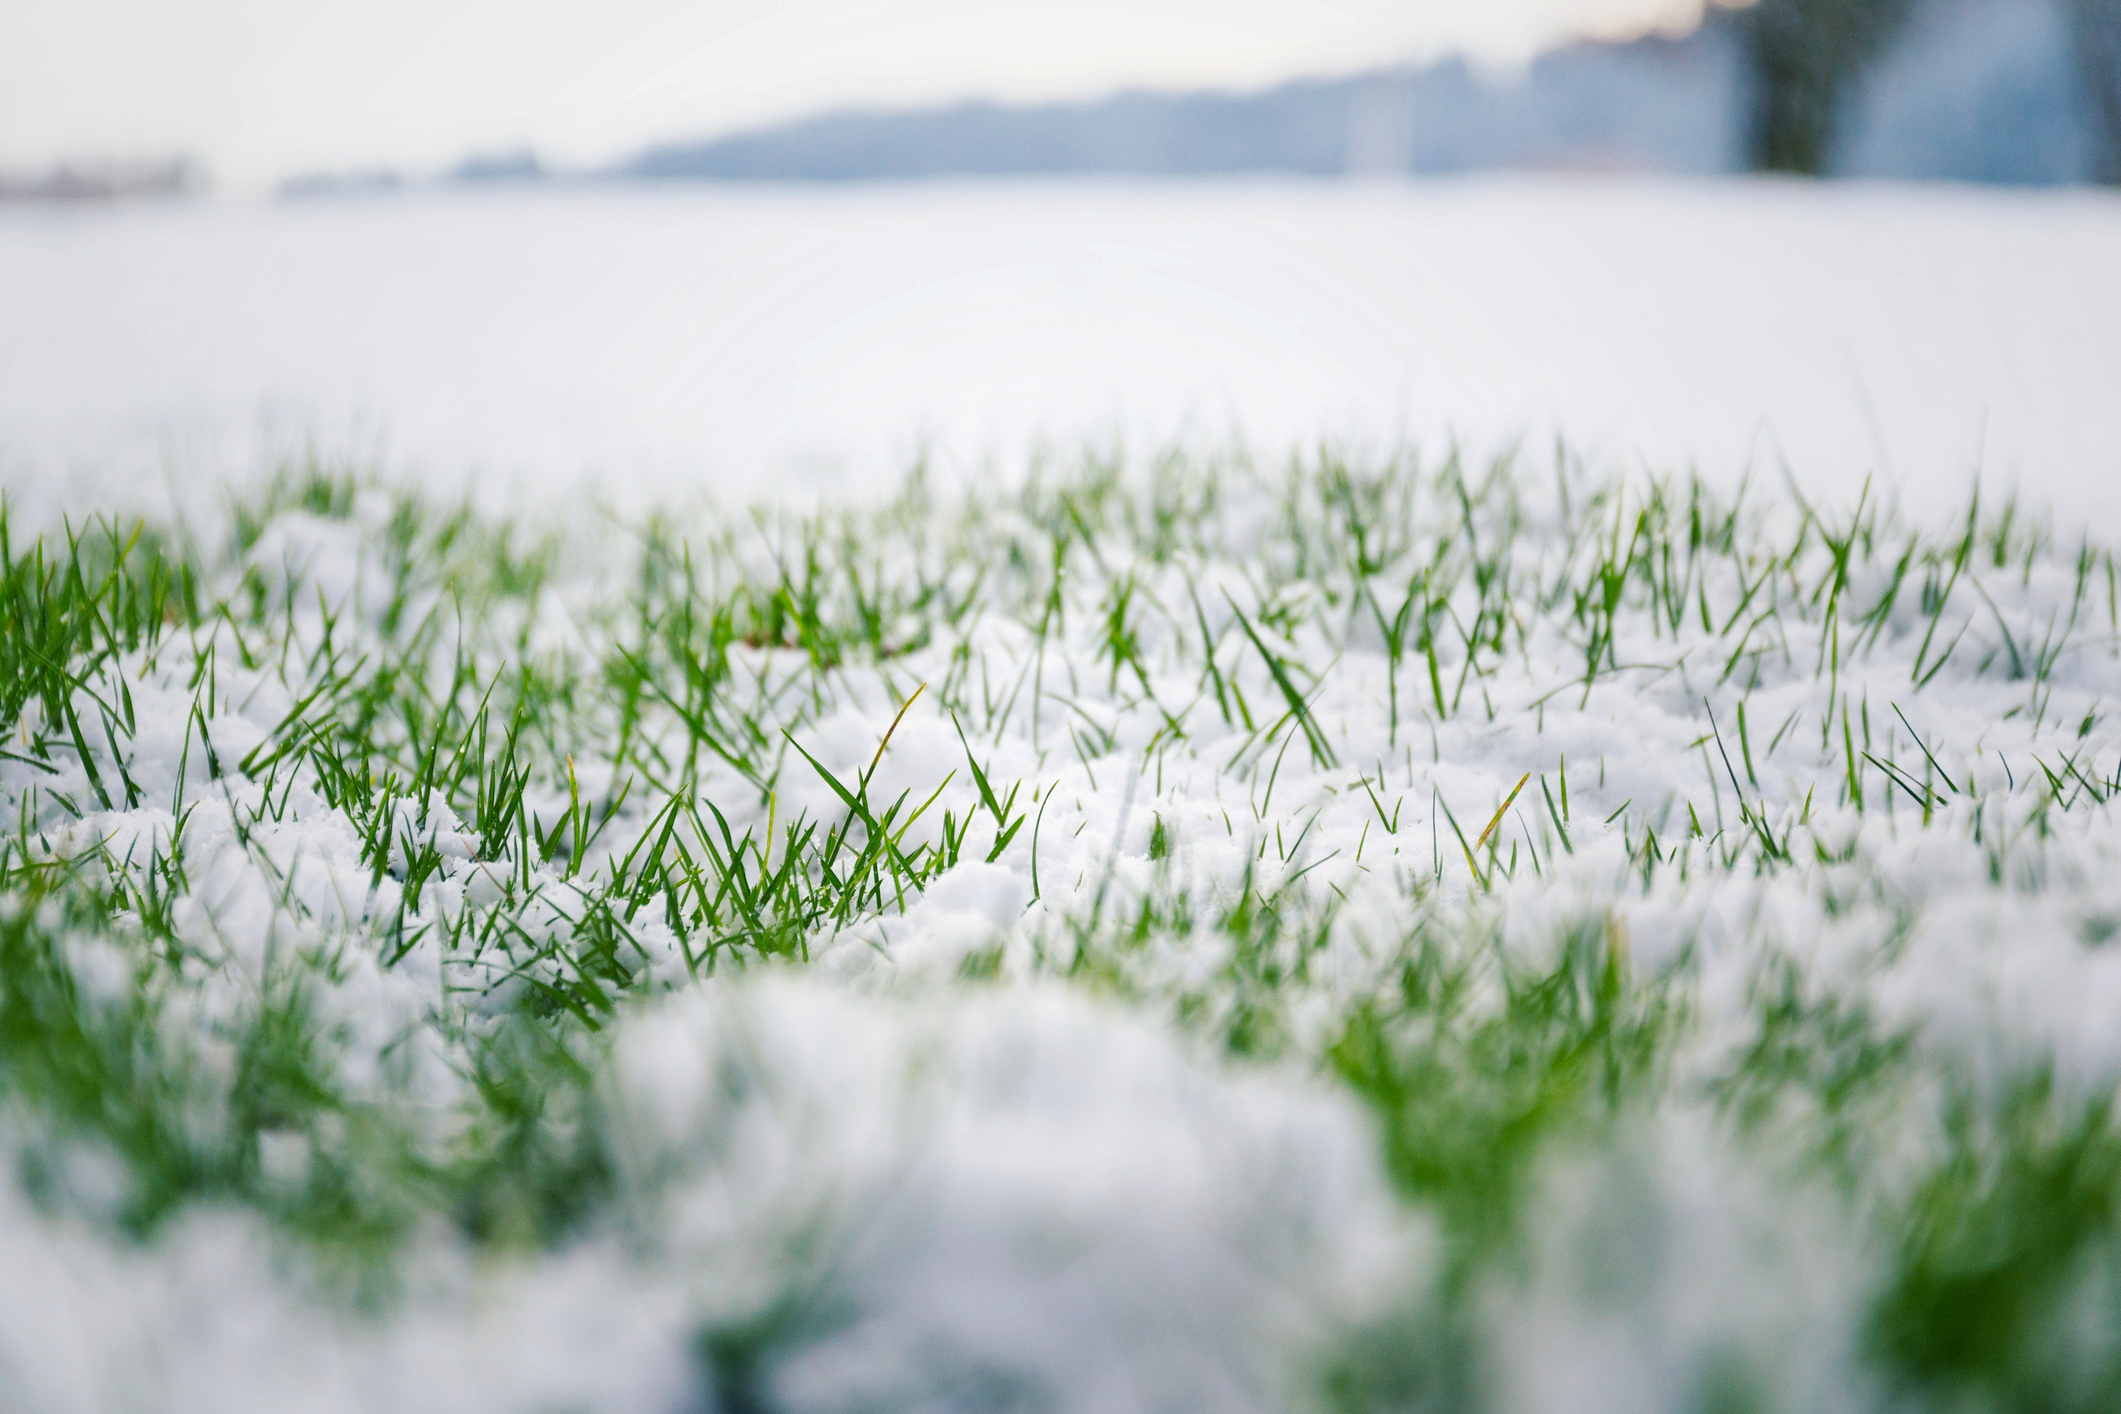 Winter elements can cause damage to your lawn.